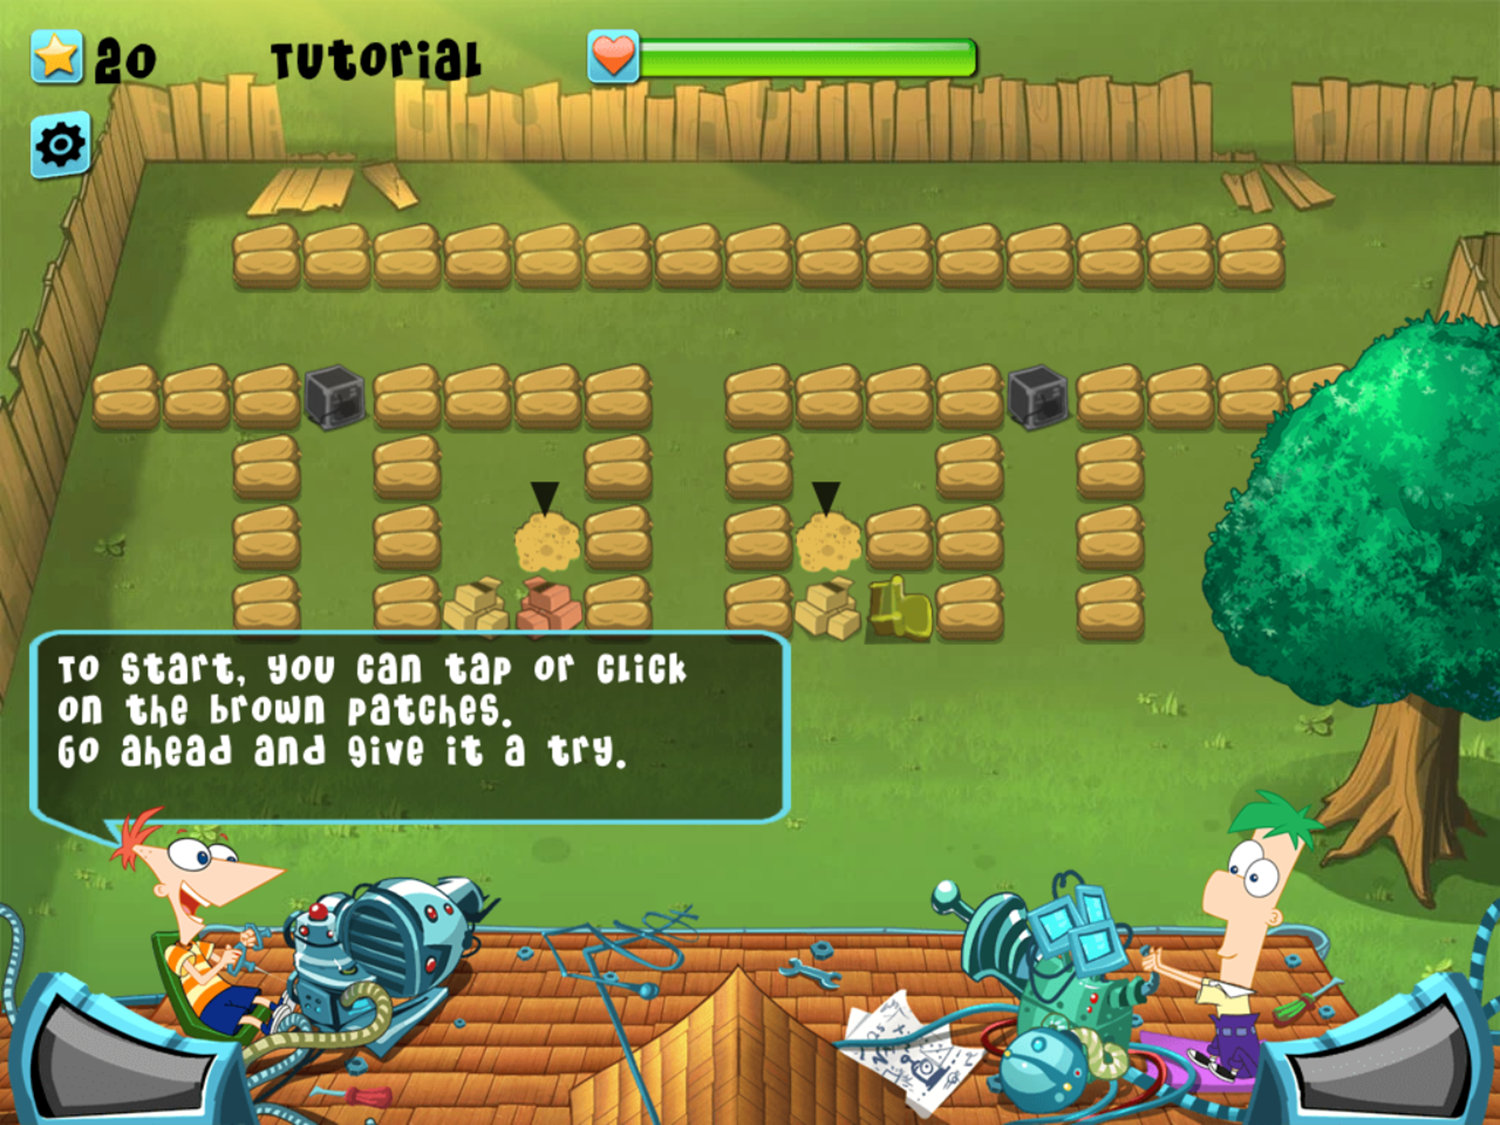 Phineas and Ferb Backyard Defense Game How To Play Screenshot.